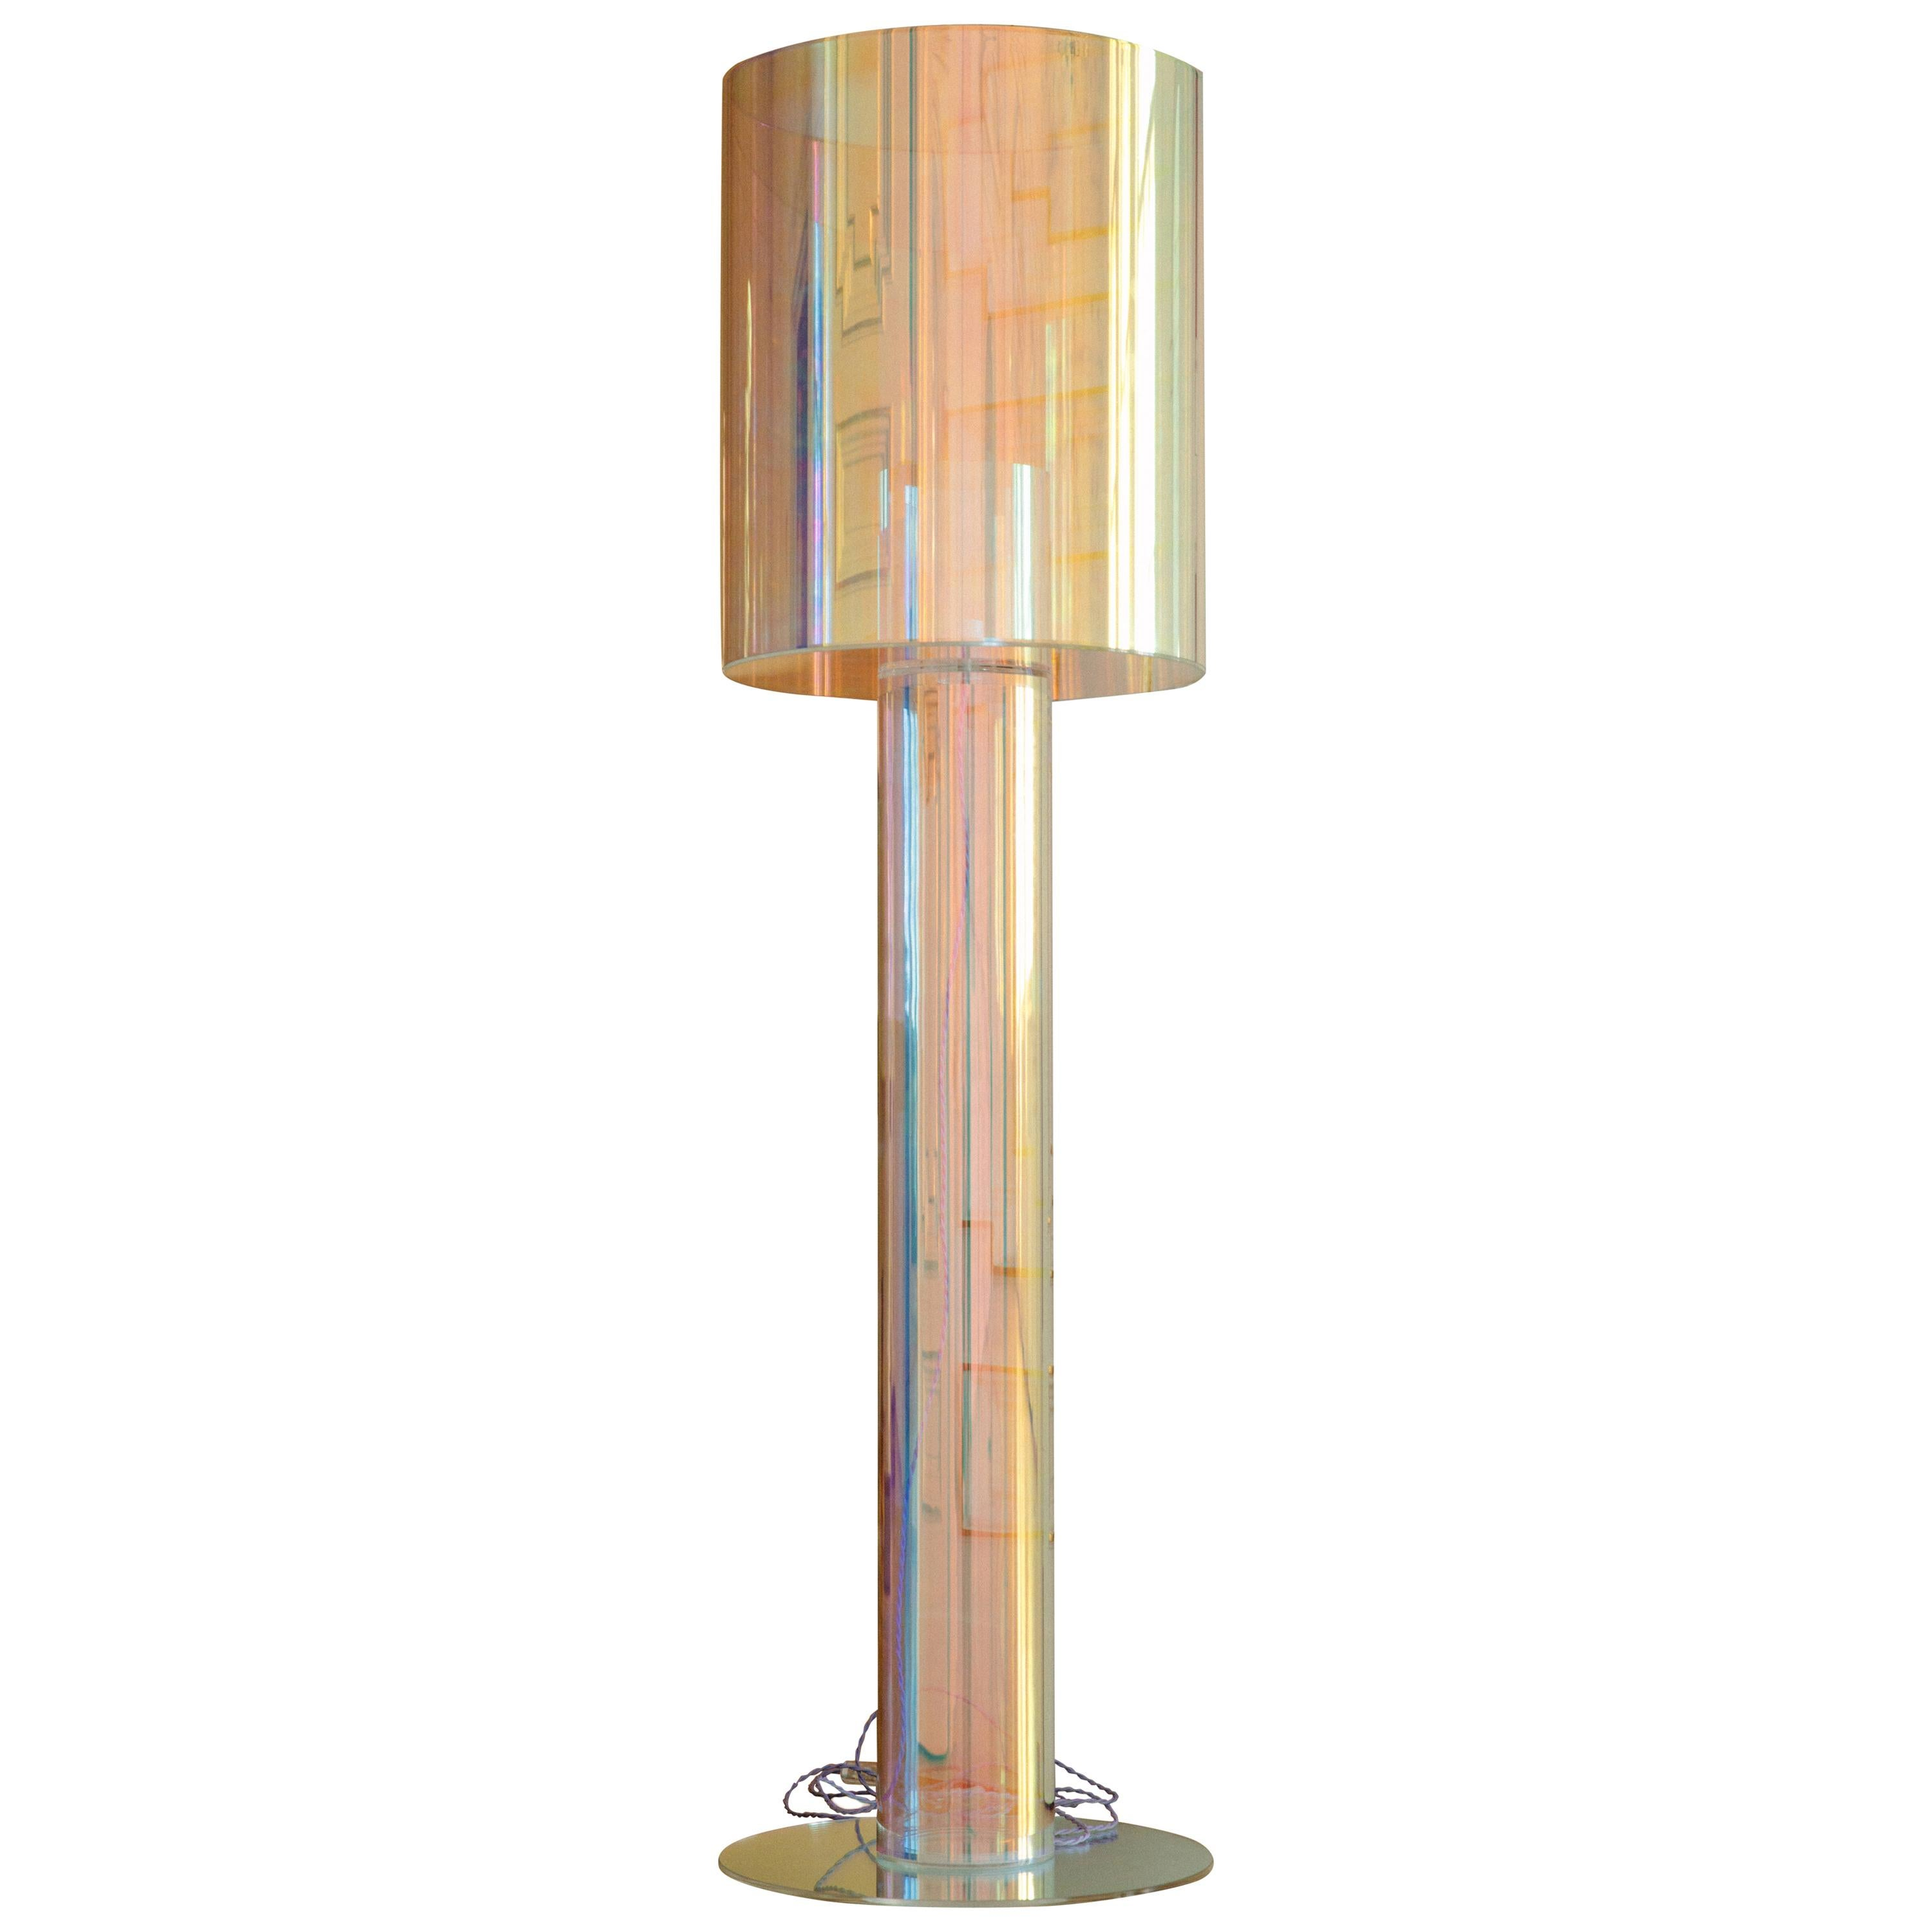 Miami Contemporary Floor Lamp by Brajak Vitberg